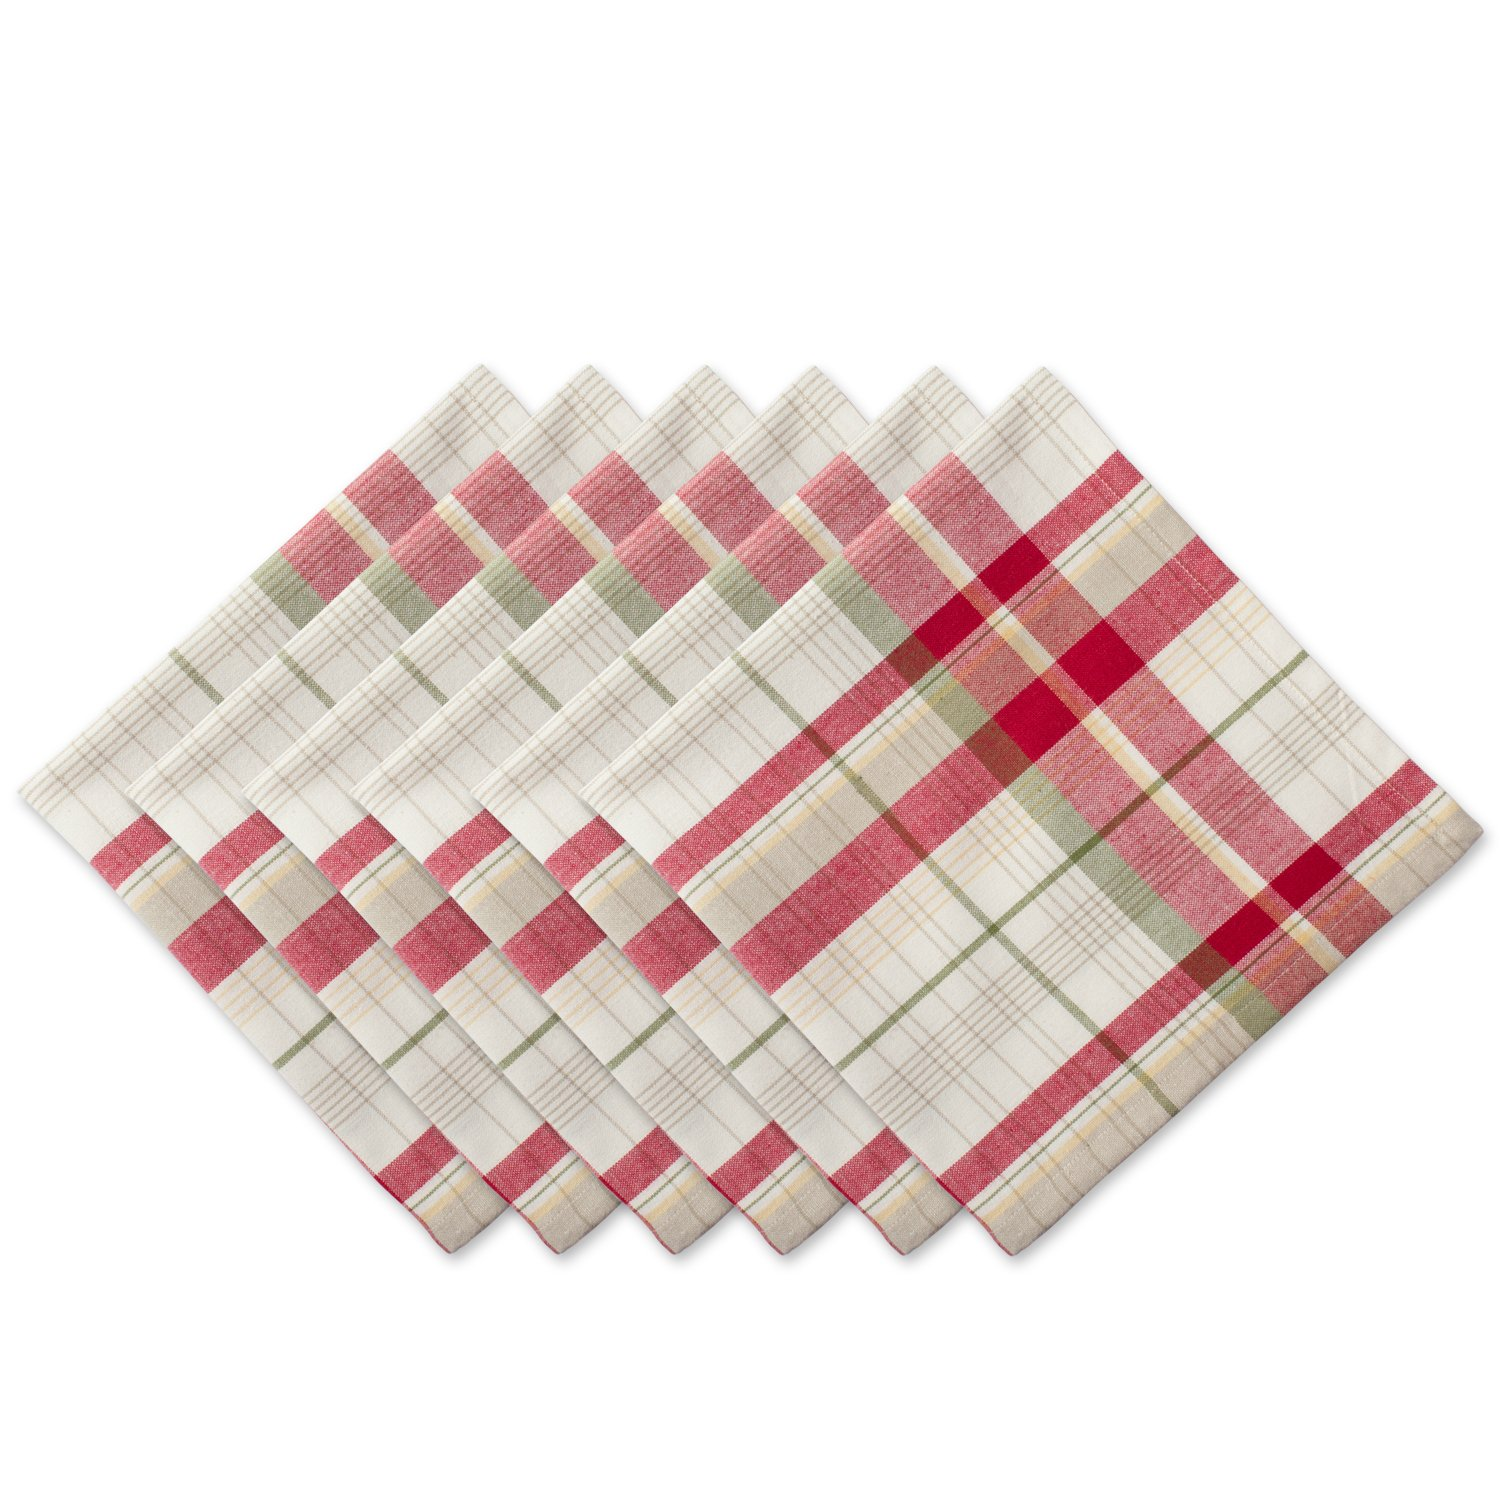 Orchard Plaid Cotton Fabric Christmas Napkins Set of 6 - ChristmasTablescapeDecor.com